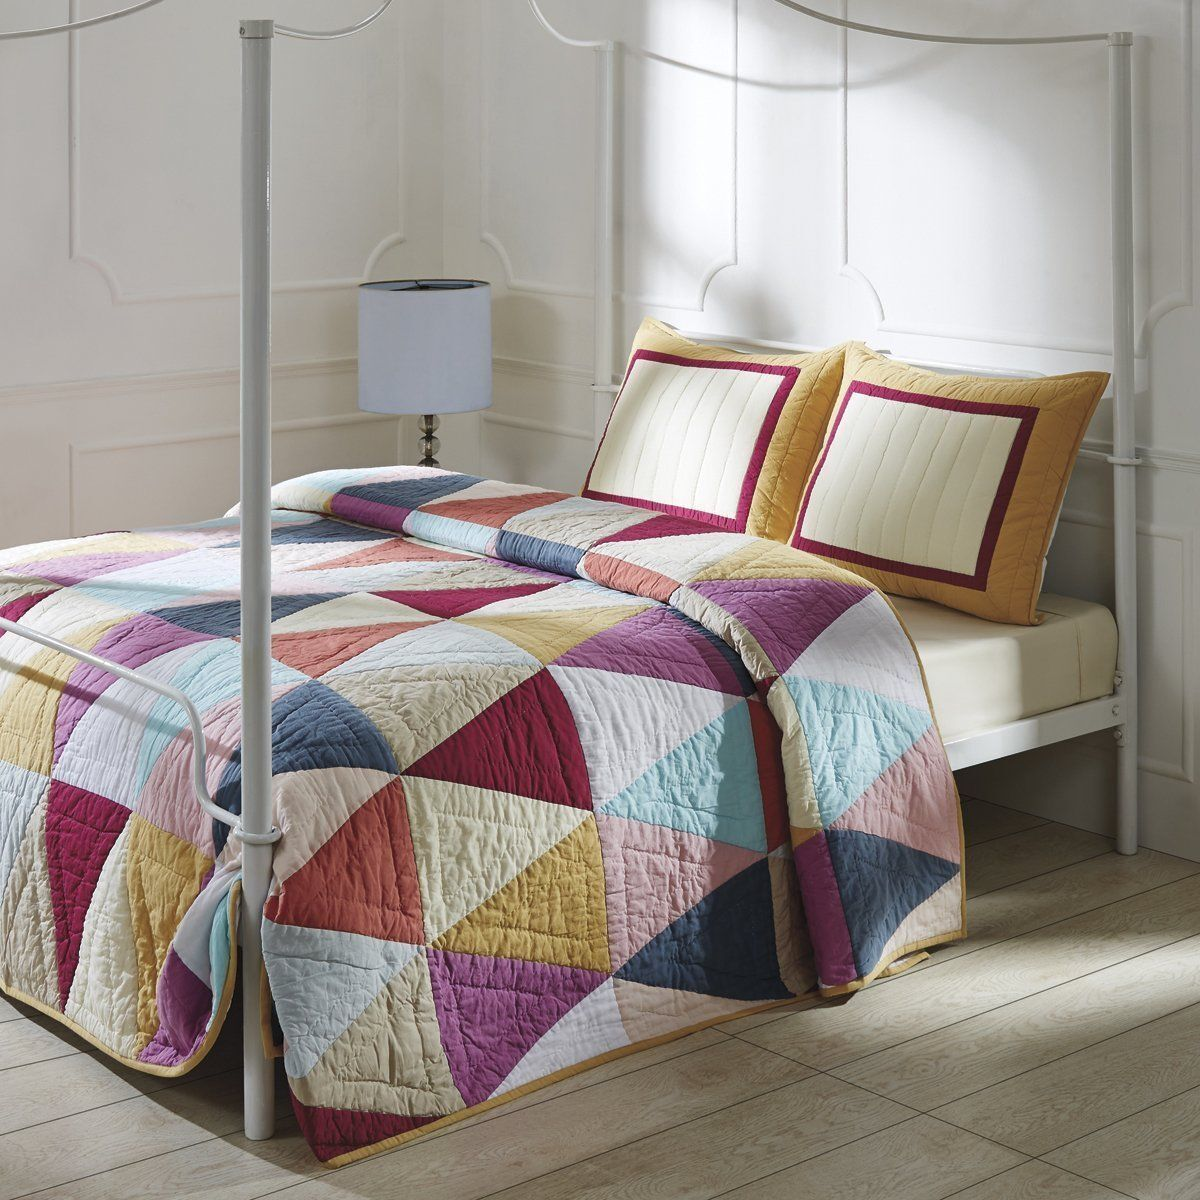 NIP VHC Brands Gala Multi Colored Patchwork King Quilt & Sha